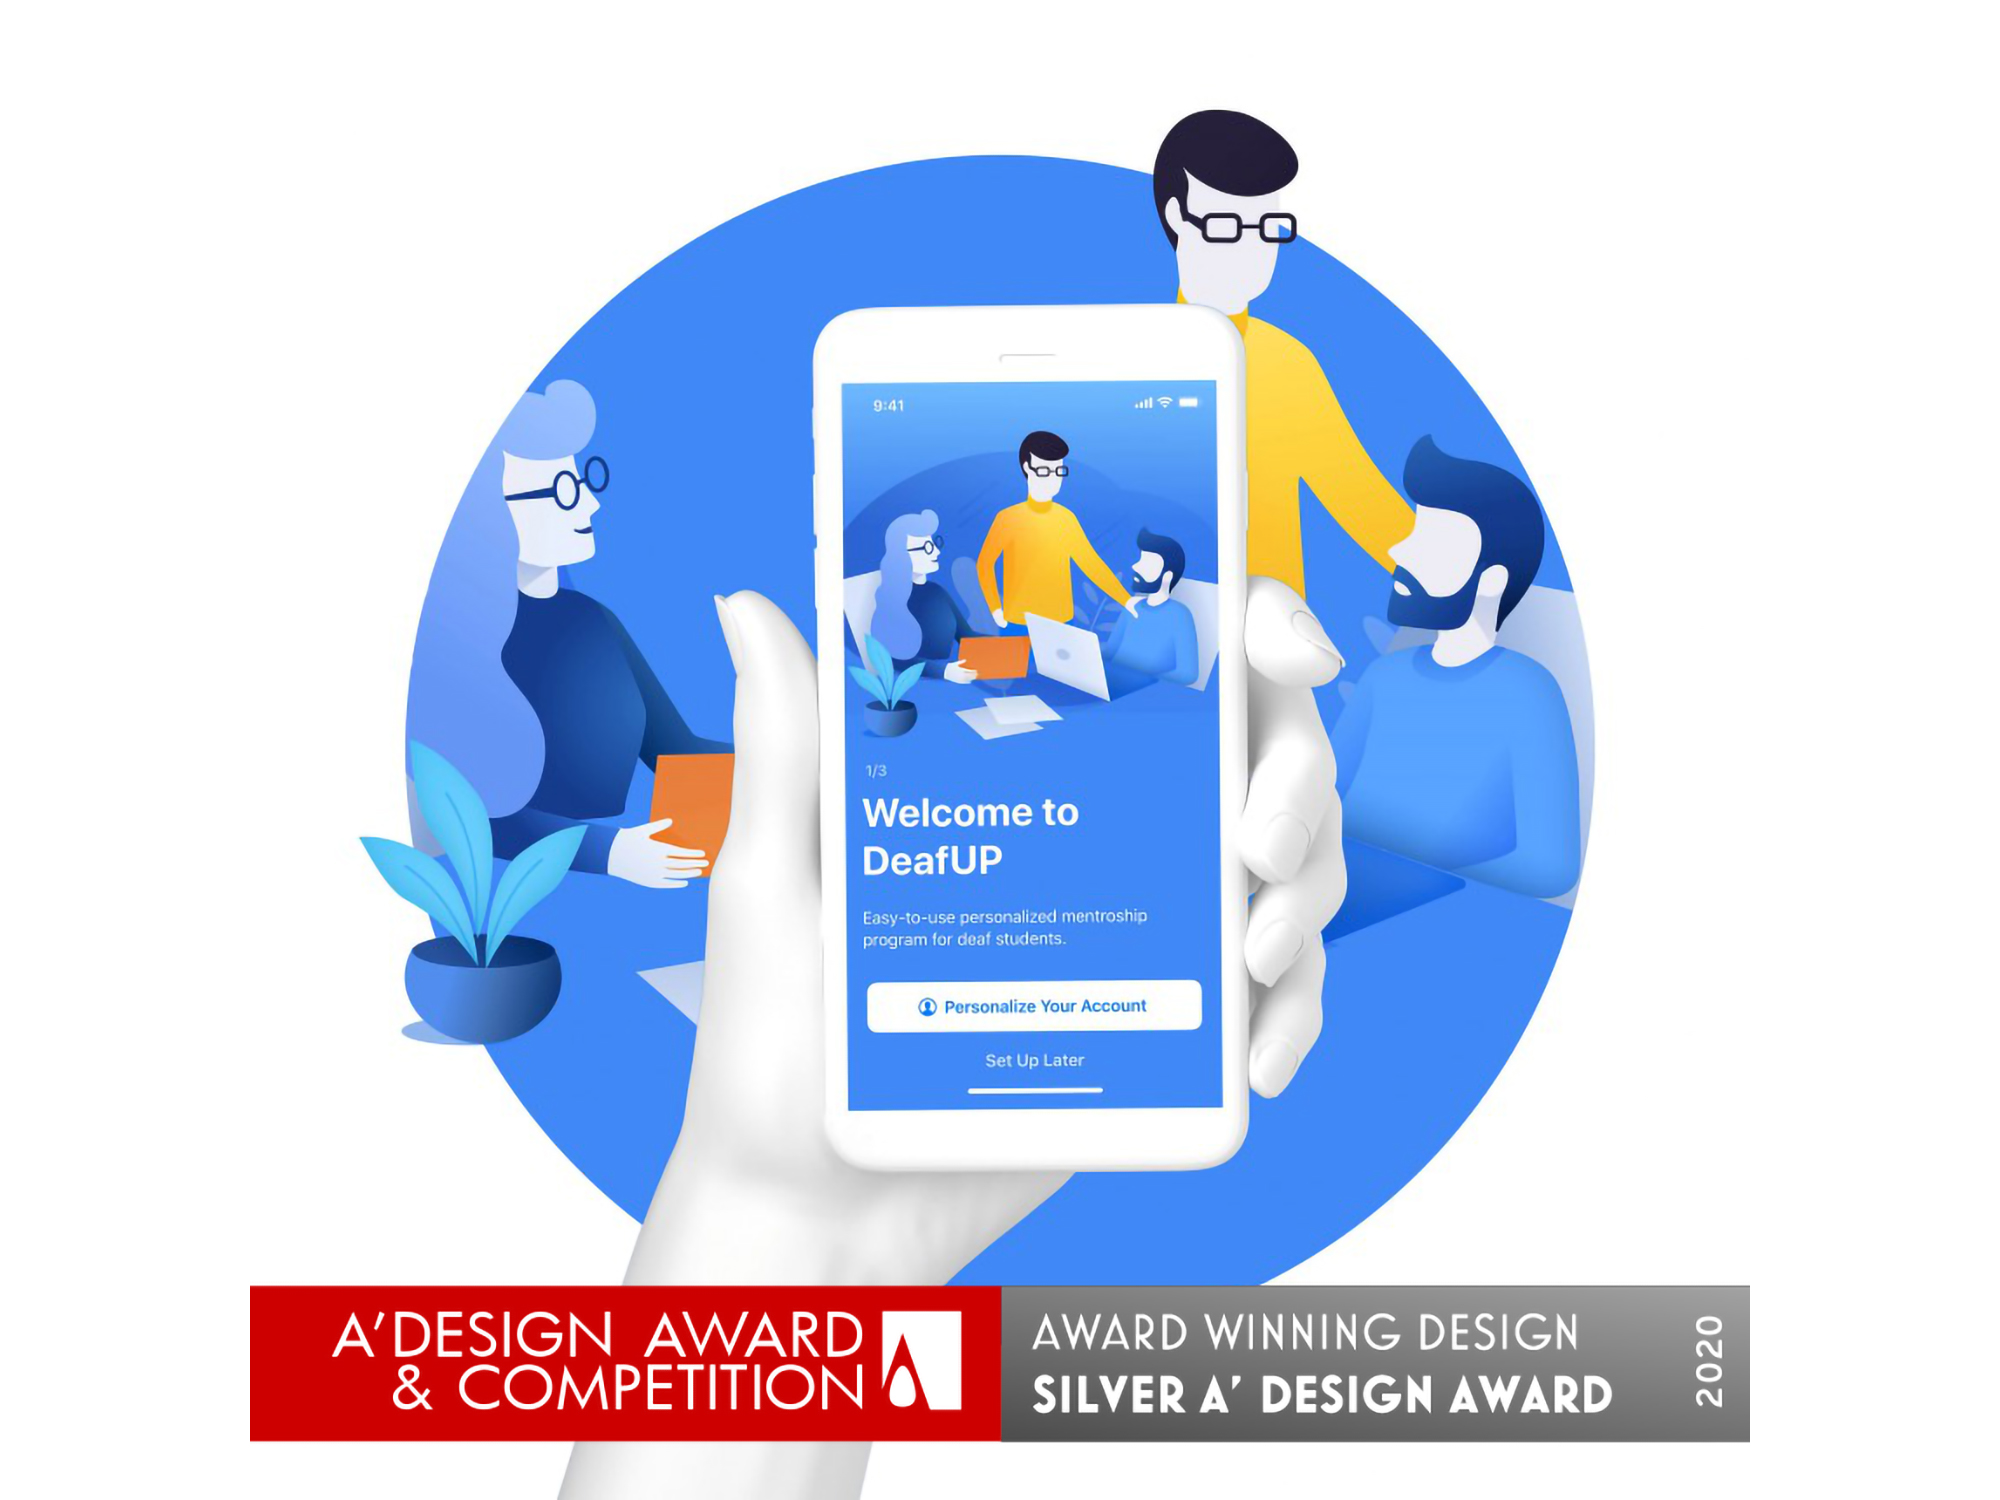 Unique App for Deaf People Wins Silver Award from World's Largest Design Contest